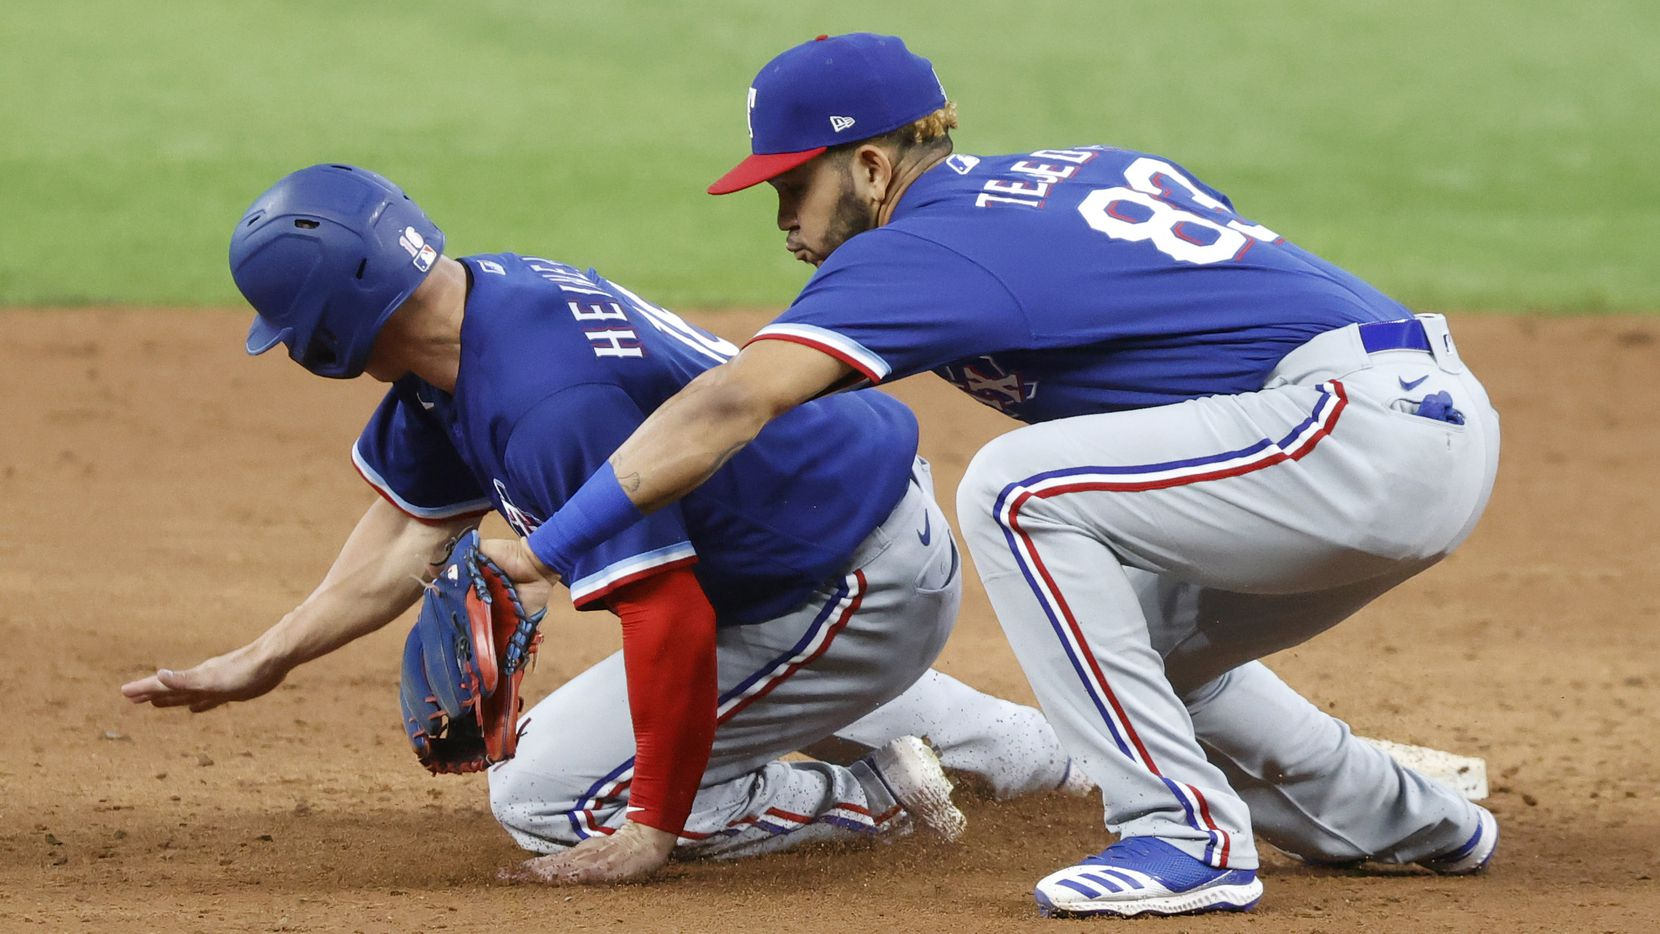 Texas Rangers outfielder Scott Heineman gets back to second safely on a thrown down to infielder Anderson Tejeda from the catcher during a simulated Summer Camp game at Globe Life Field in Arlington, Texas, Thursday, July 9, 2020. (Tom Fox/The Dallas Morning News)